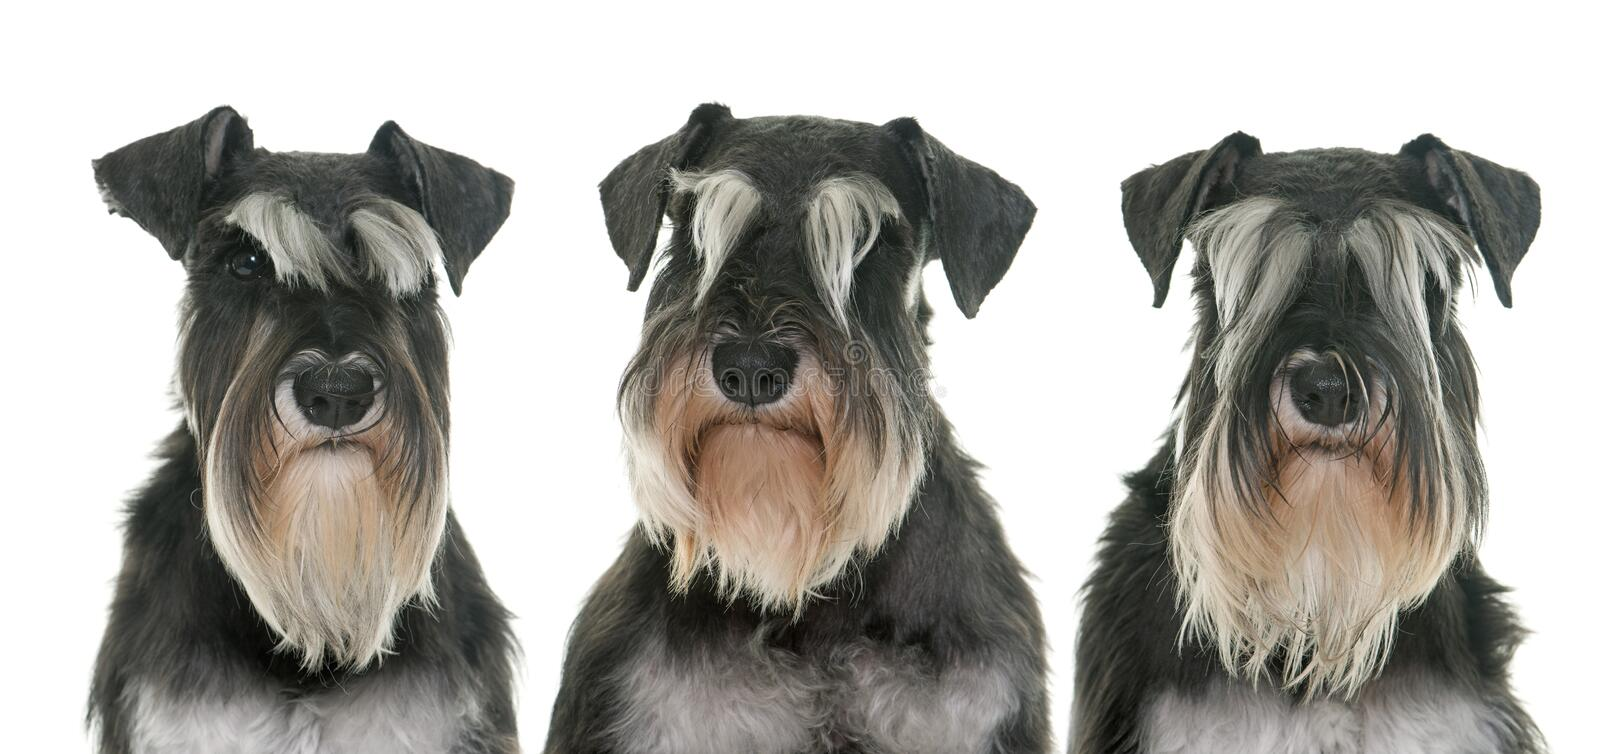 Black and white miniature schnauzers royalty free stock photography